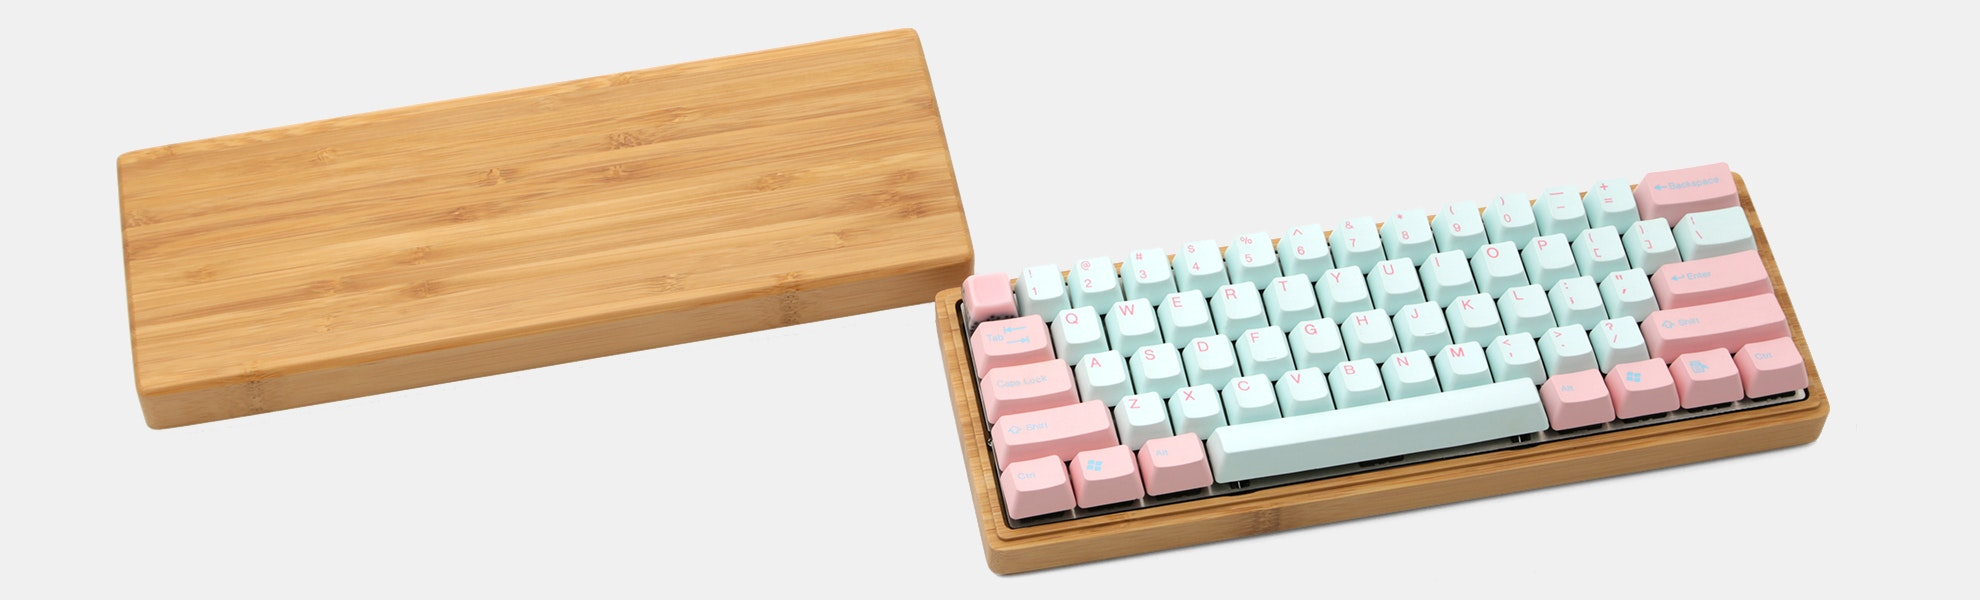 NPKC Bamboo 60% Mechanical Keyboard Case